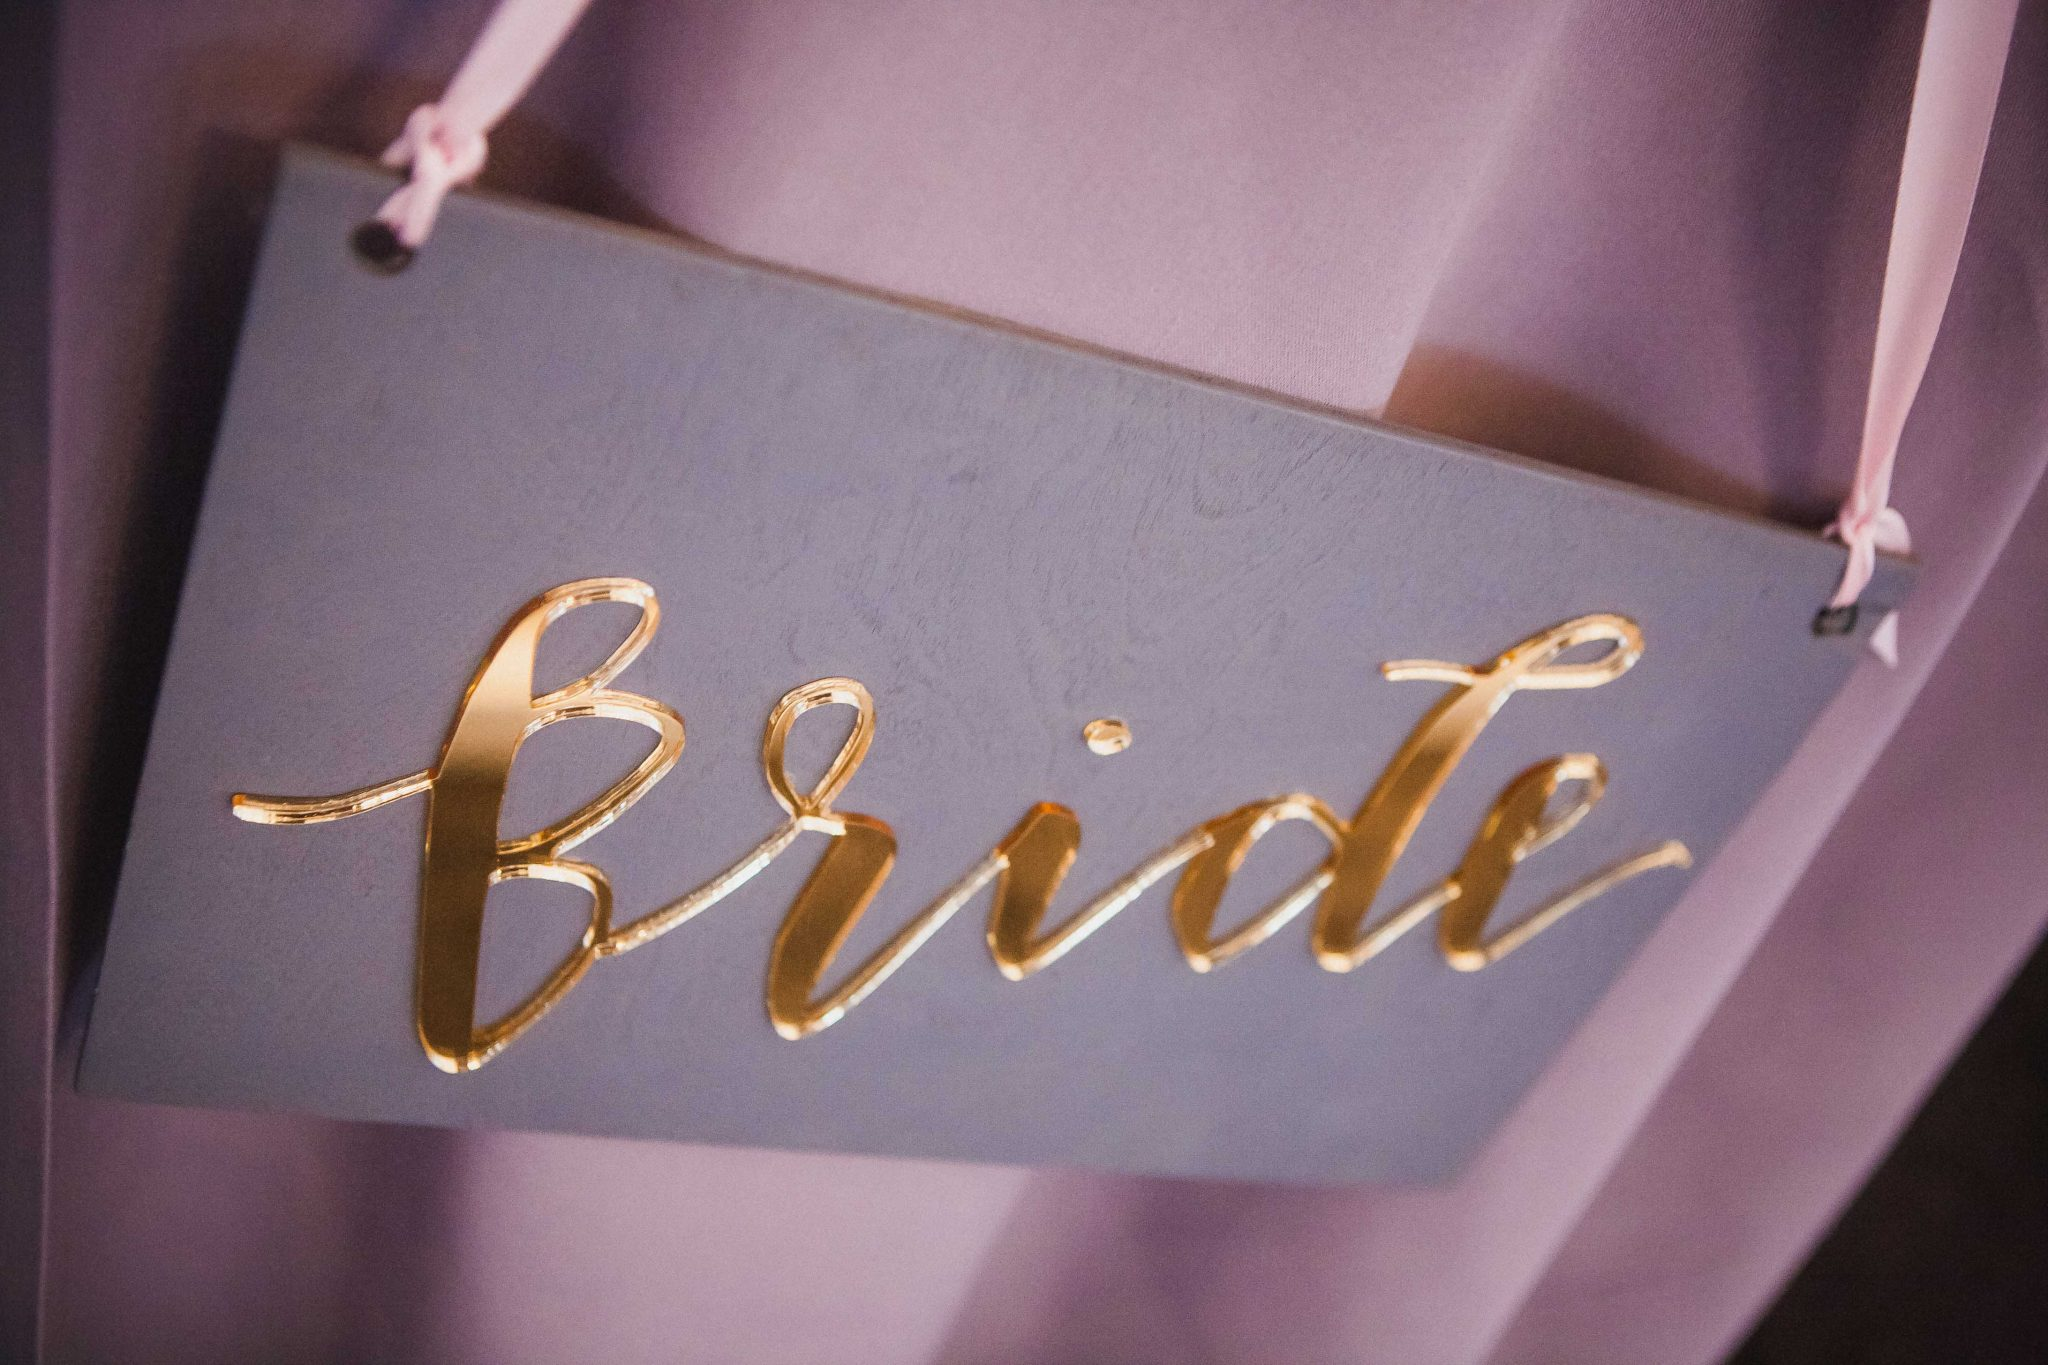 Bride sign for the back of the bride's chair at the wedding reception party